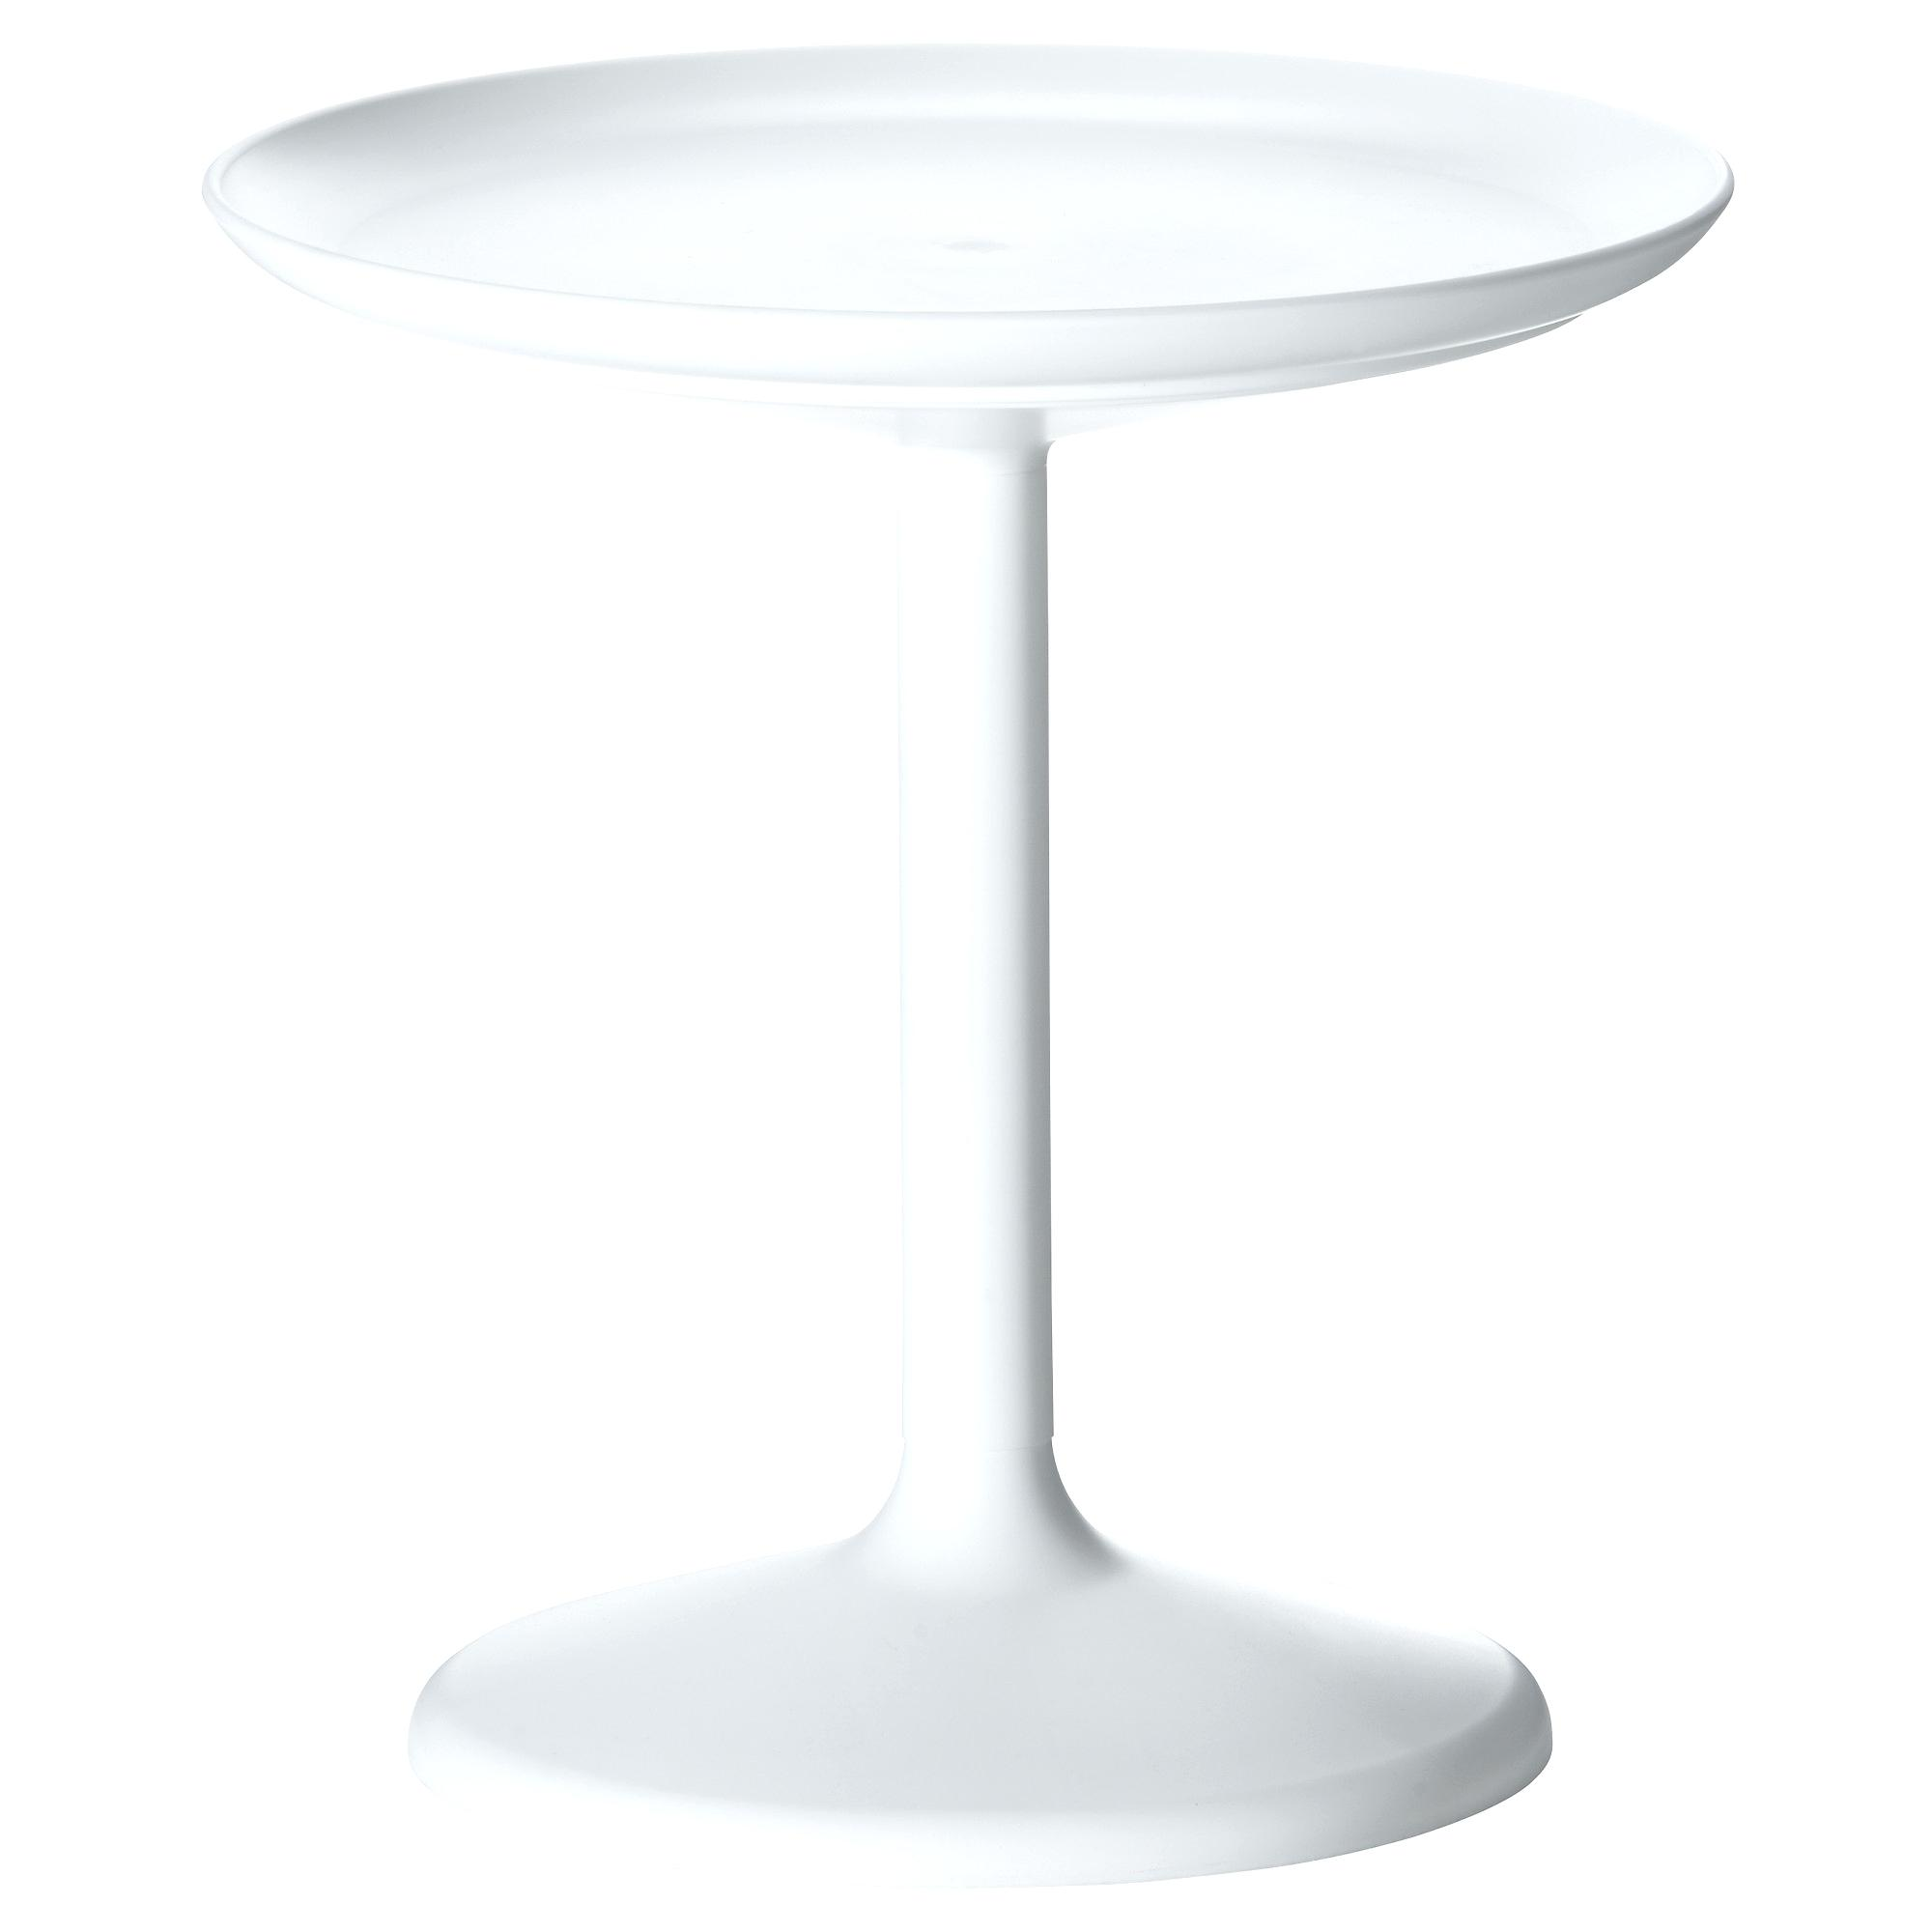 white outdoor side table metal plastic tables wicker facesseattle wooden resin ikea desk and storage spring haven collection home clock united furniture wine racks tall nightstand